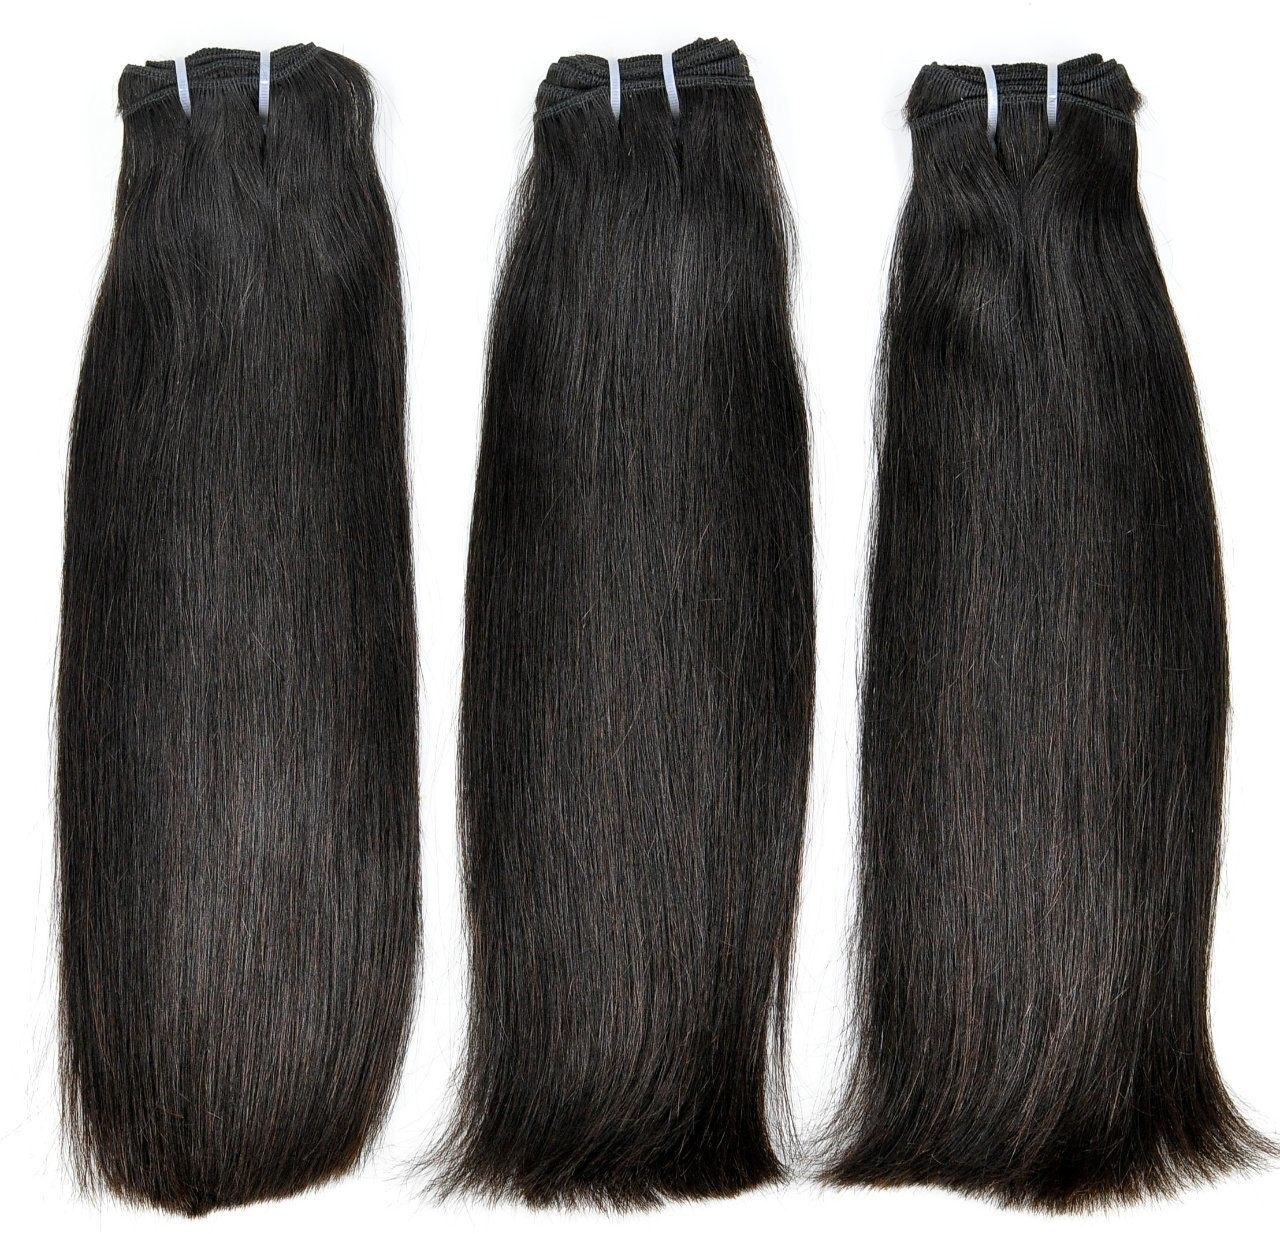 Boost Your Self Confidence With 32 Inches Weave Hair Extensions